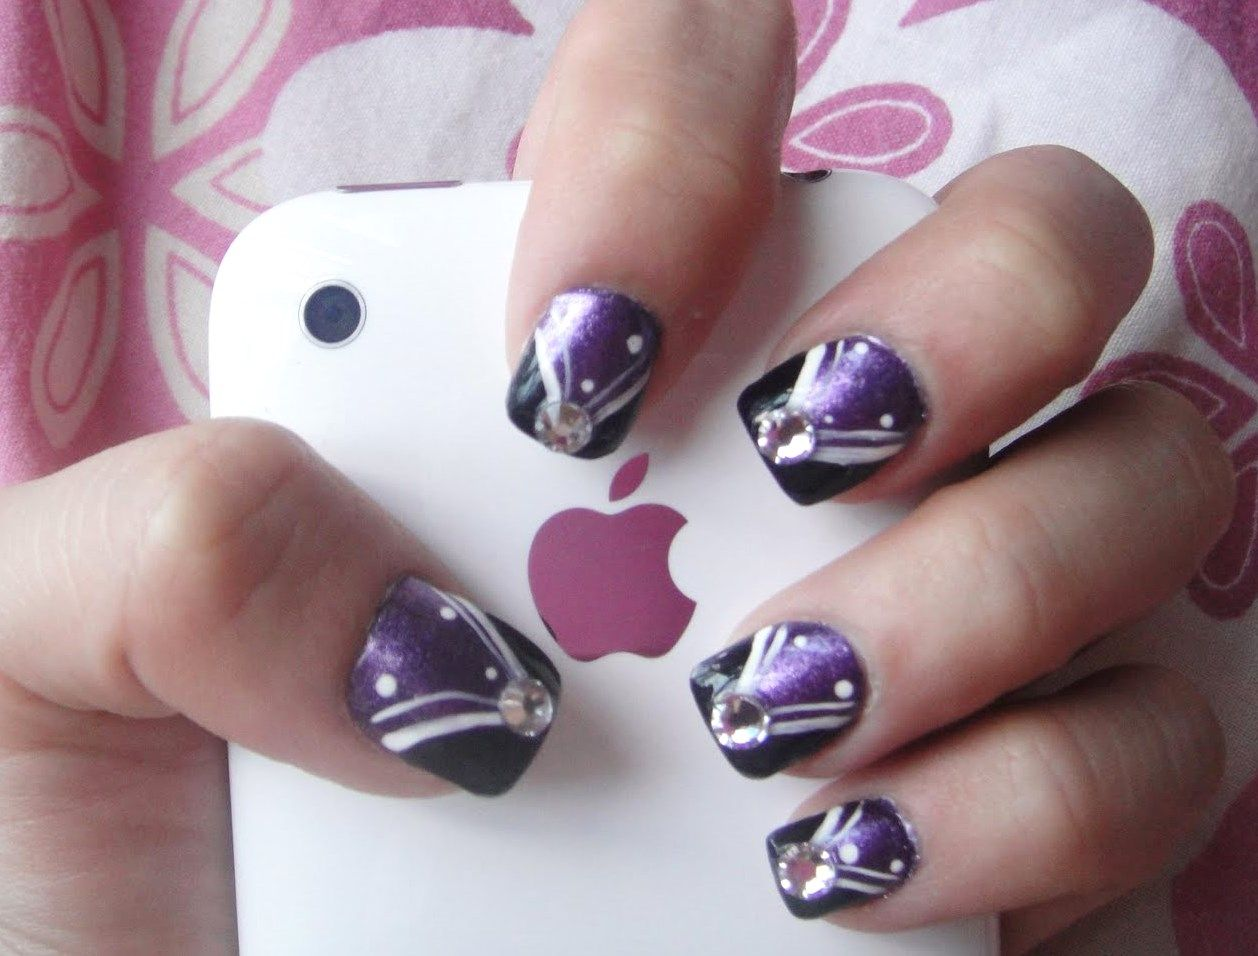 Great Nail Polish For Christmas Tall Red Carpet Nail Polish Shaped Nail Art How To Opi Nail Polish Designs Young Beautiful Nails Art Images BrightNail Art Designs On Toes Latest Nail Art Designs For Short Nails   Emsilog